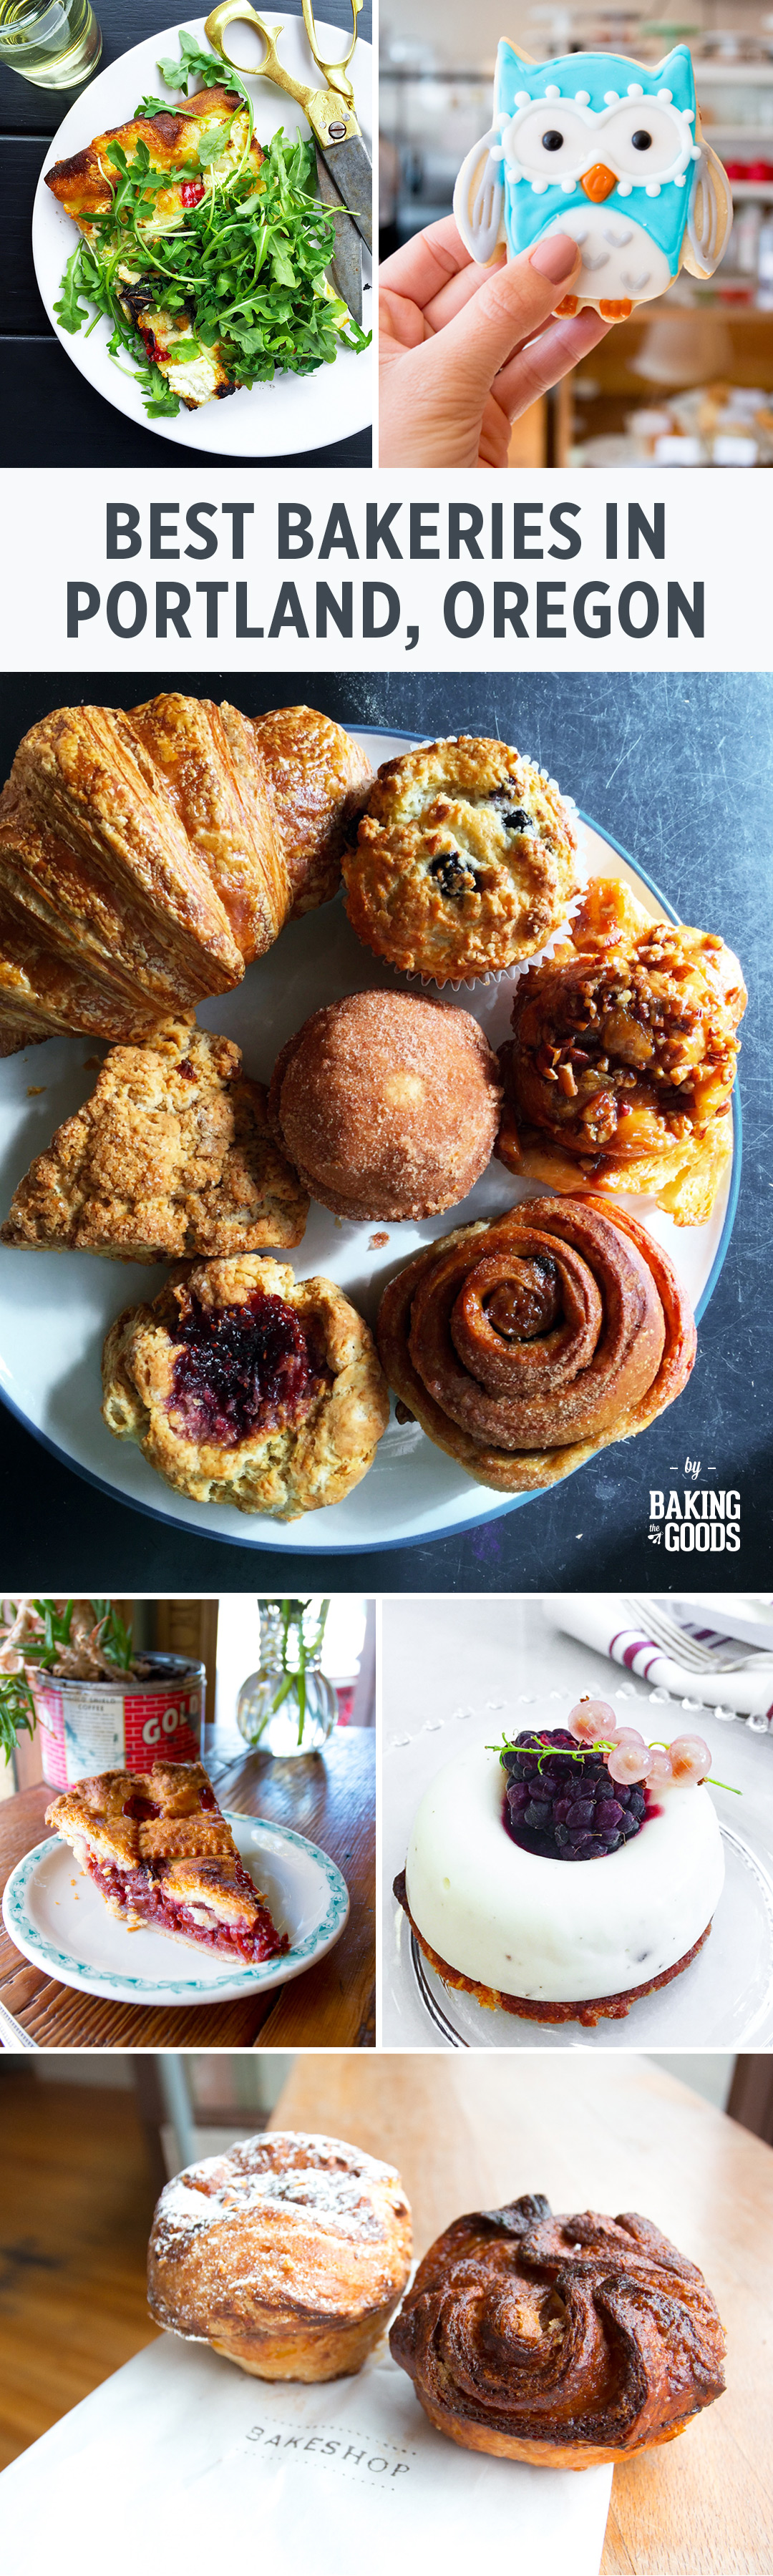 The Best Bakeries in Portland, Oregon curated by Baking The Goods